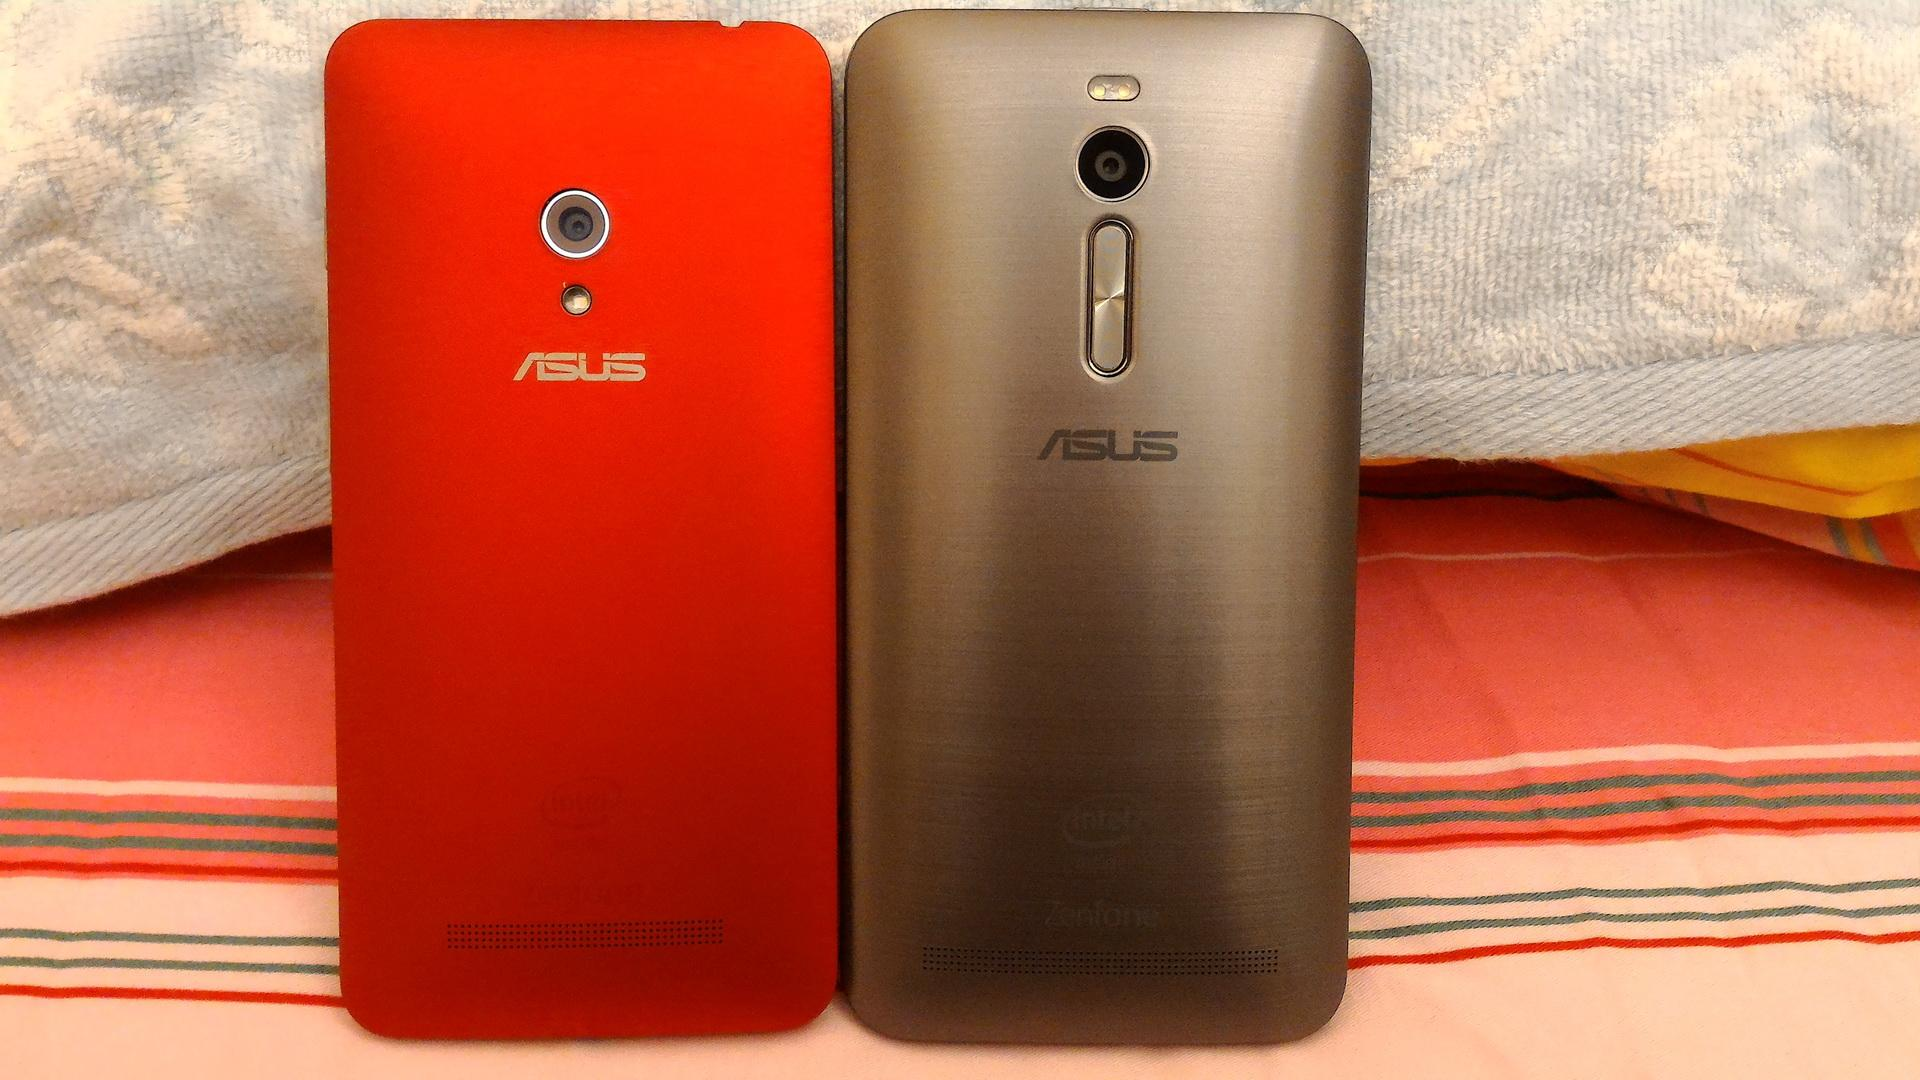 [開箱] 一機難求Zenfone2 ZE551ML 4GB-32GB入手開箱 - XFastest - 007.jpg